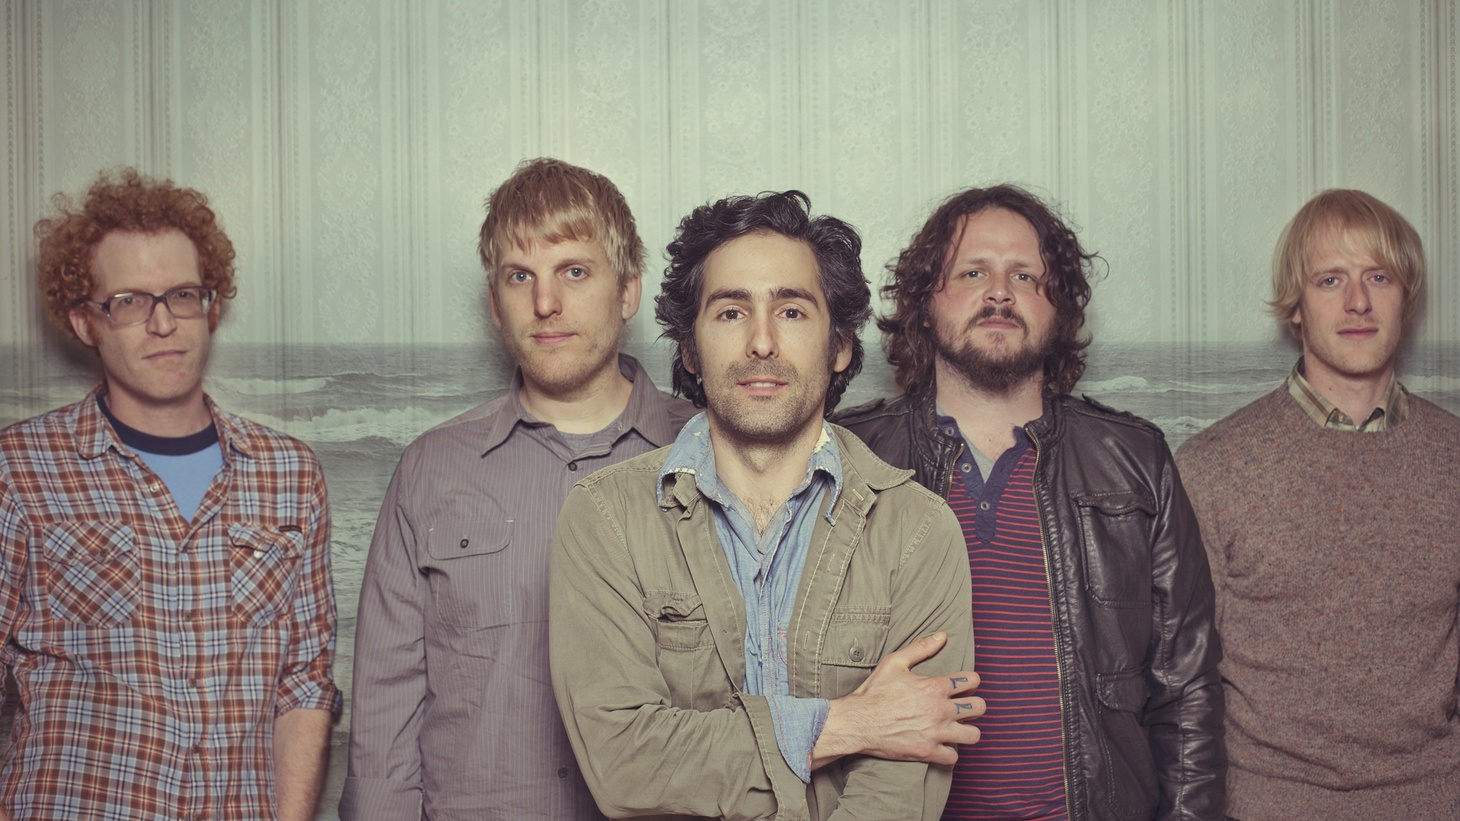 Blitzen Trapper performed a gorgeous session back in 2009 when they first visited MBE.